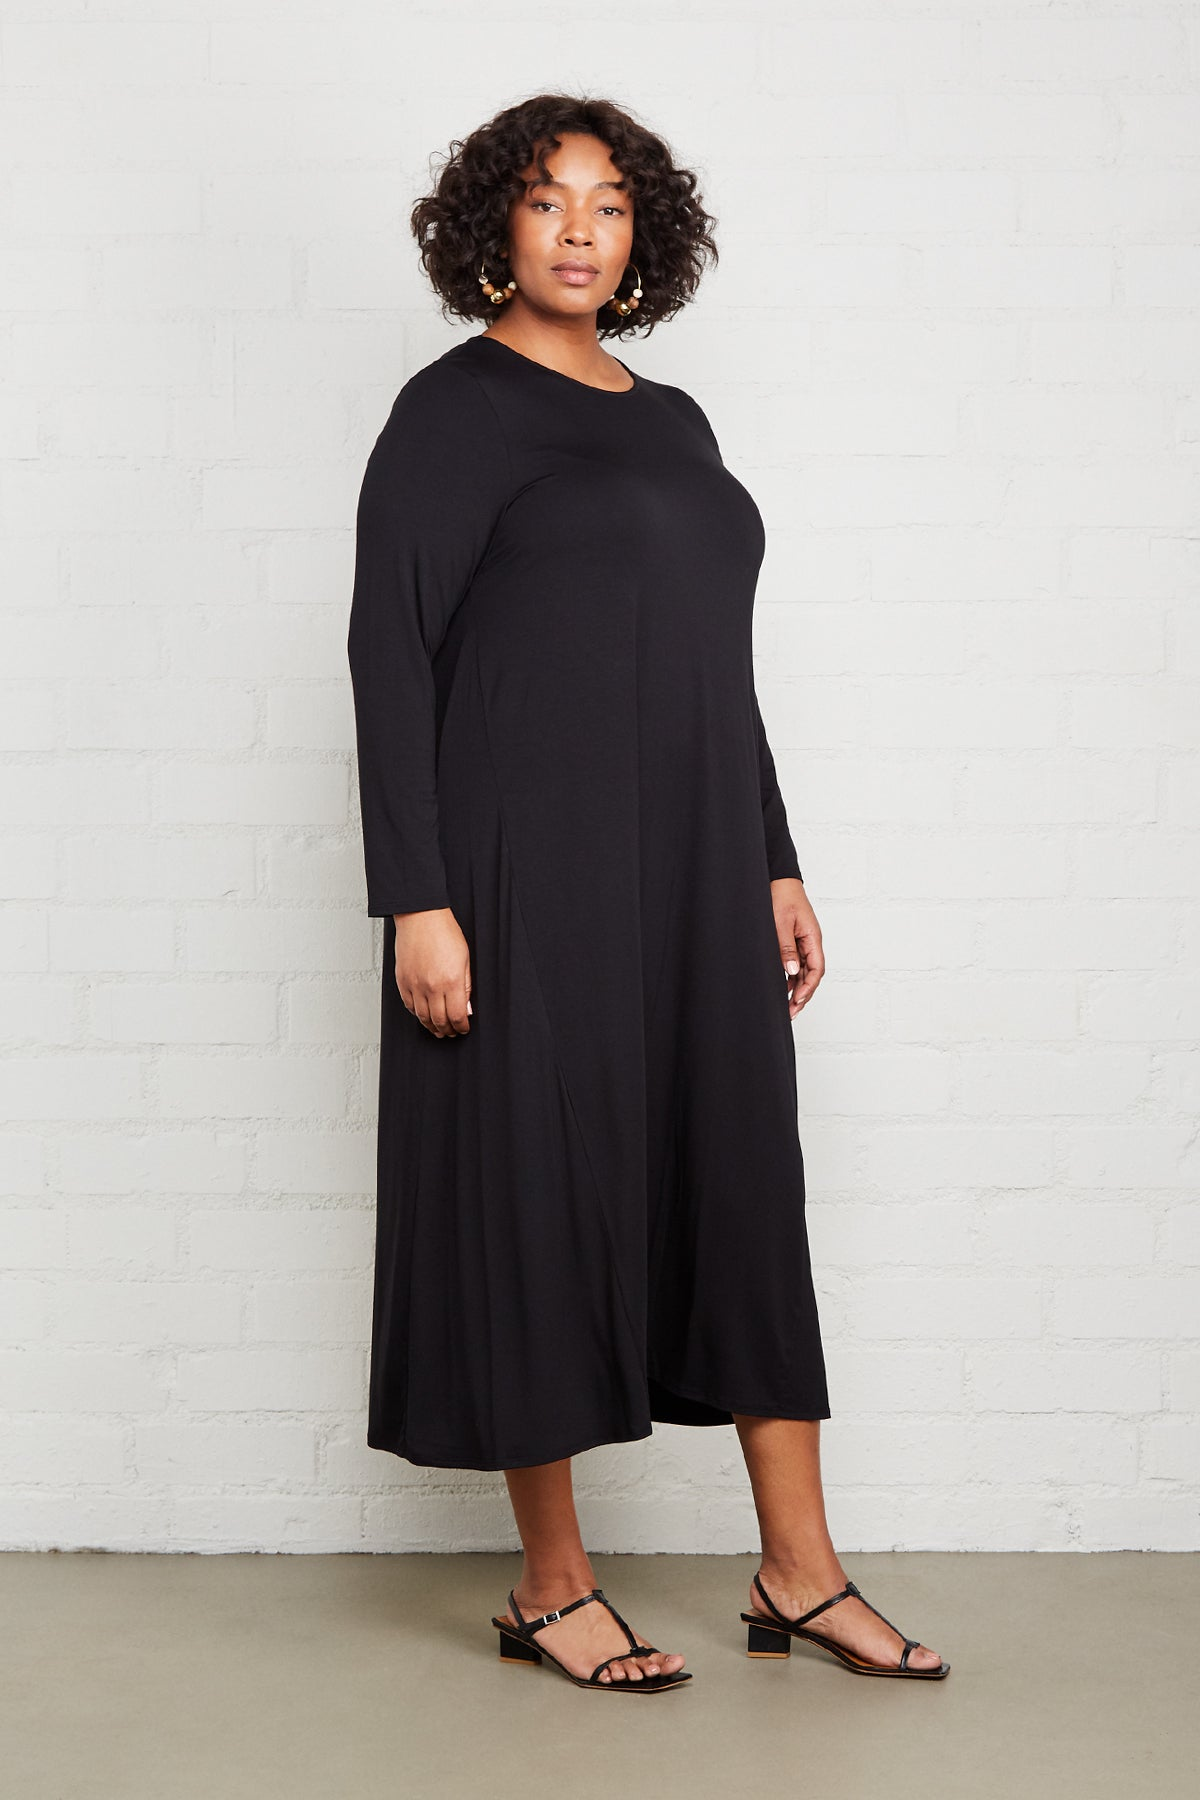 Mid-Length Stormy Dress - Black, Plus Size